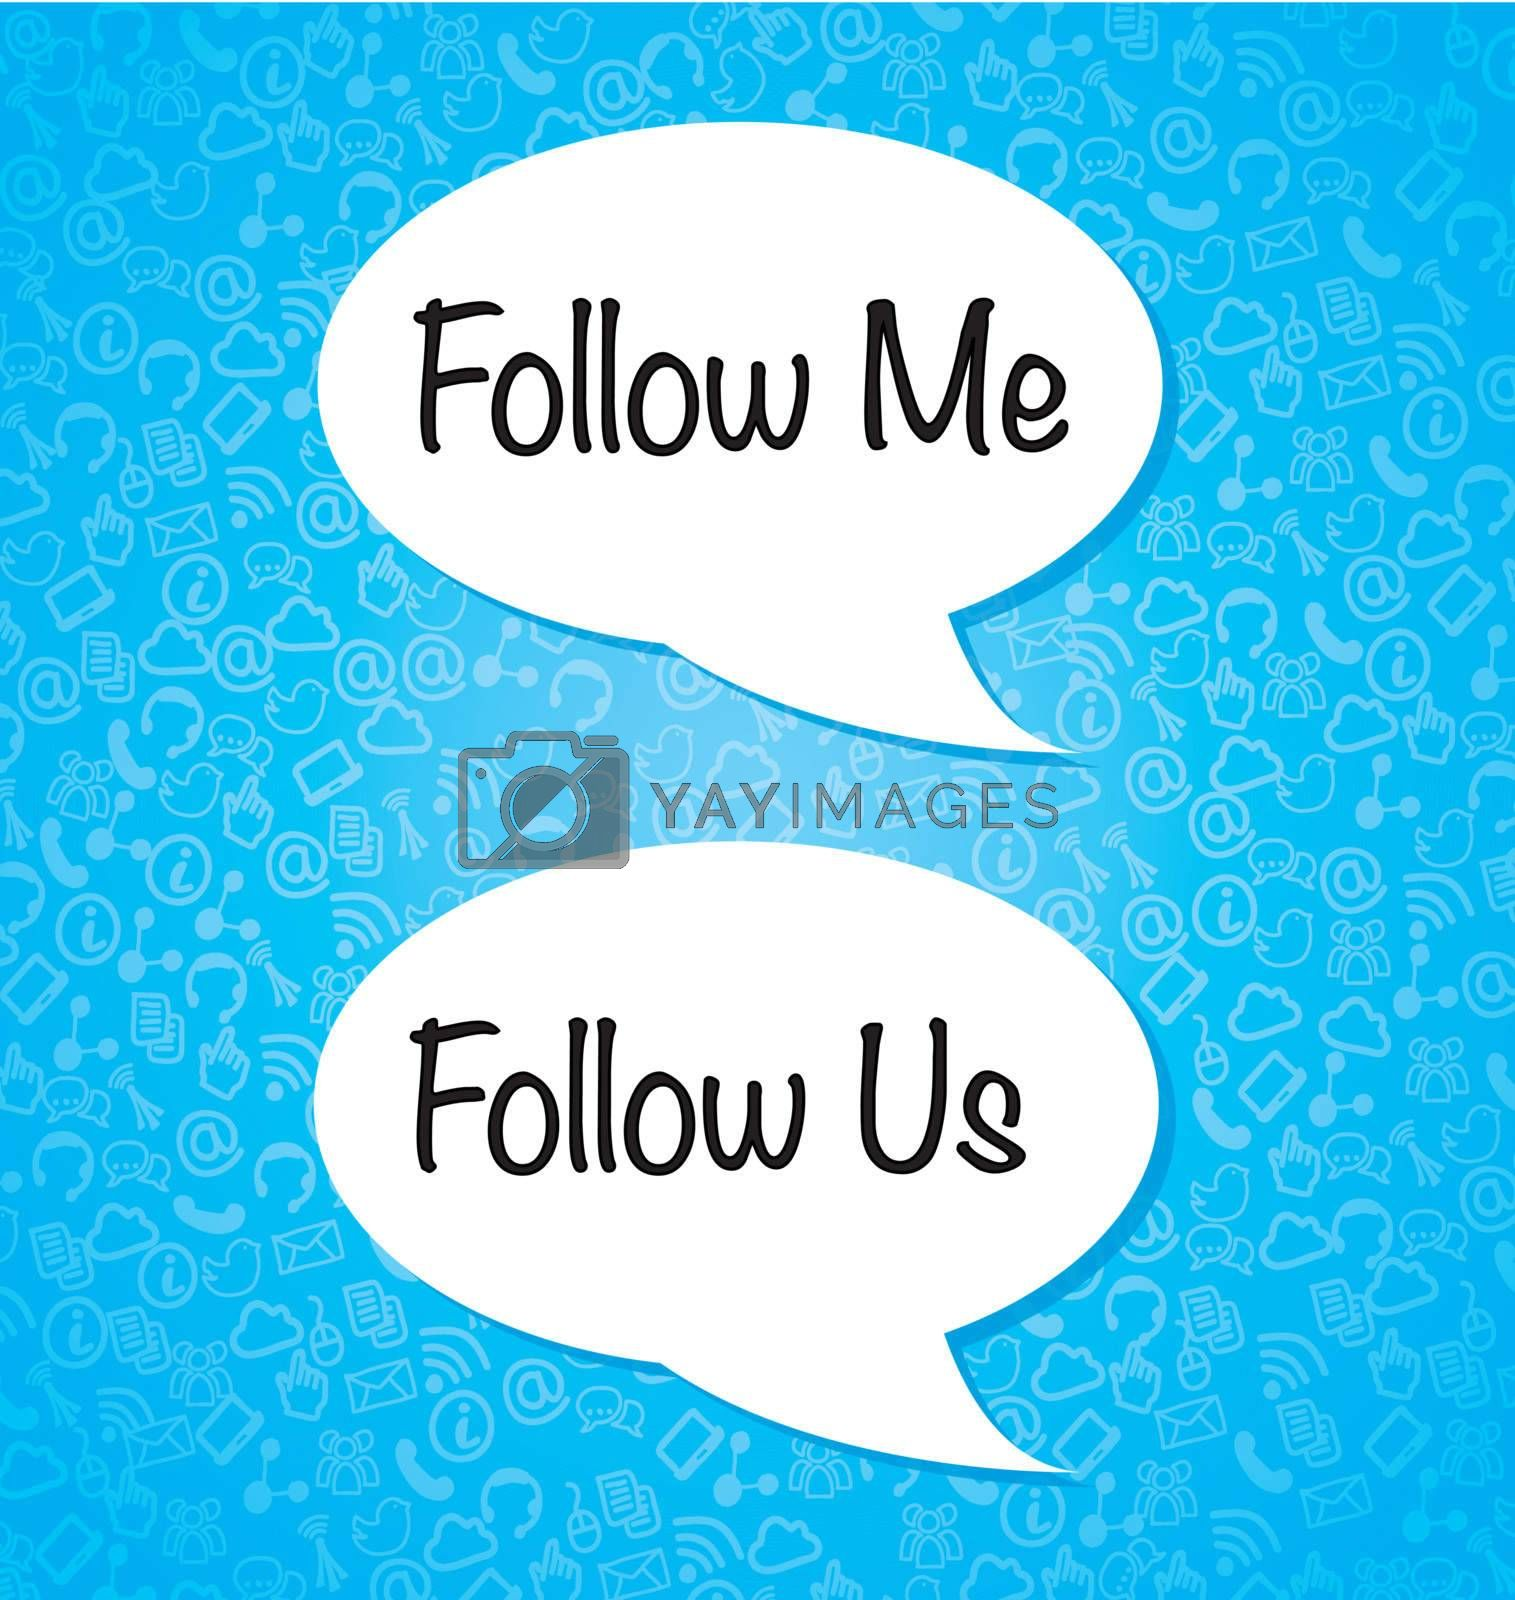 Follow me and follow us over blue background vector illustration